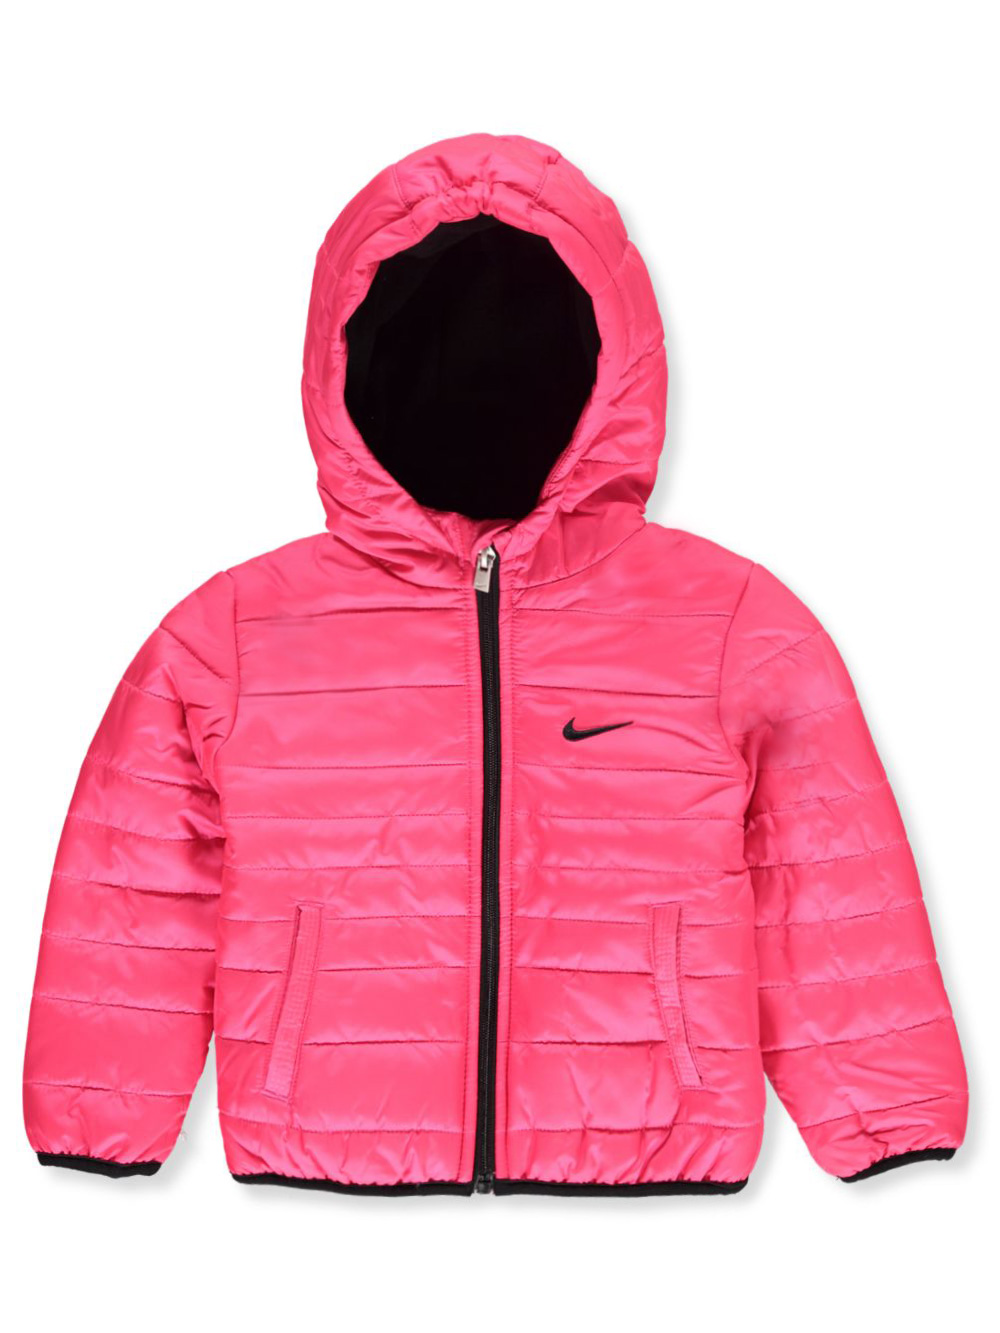 Jackets and Coats this Insulated